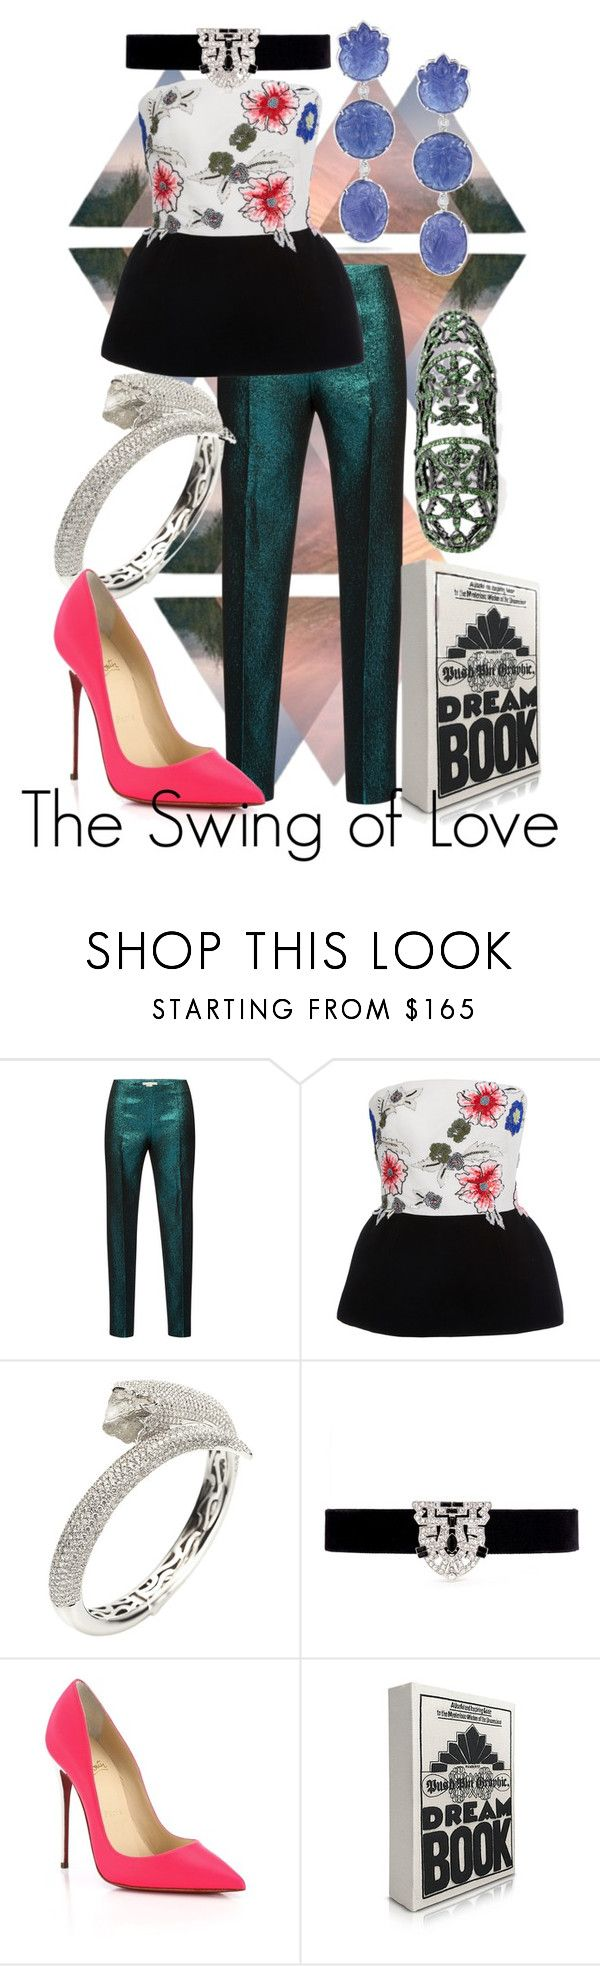 """""""Back in the Swing"""" by raecycle ❤ liked on Polyvore featuring Antonio Berardi, Monique Lhuillier, Diamond in the Rough, Kenneth Jay Lane, Christian Louboutin, Olympia Le-Tan, floral, Random and rando"""